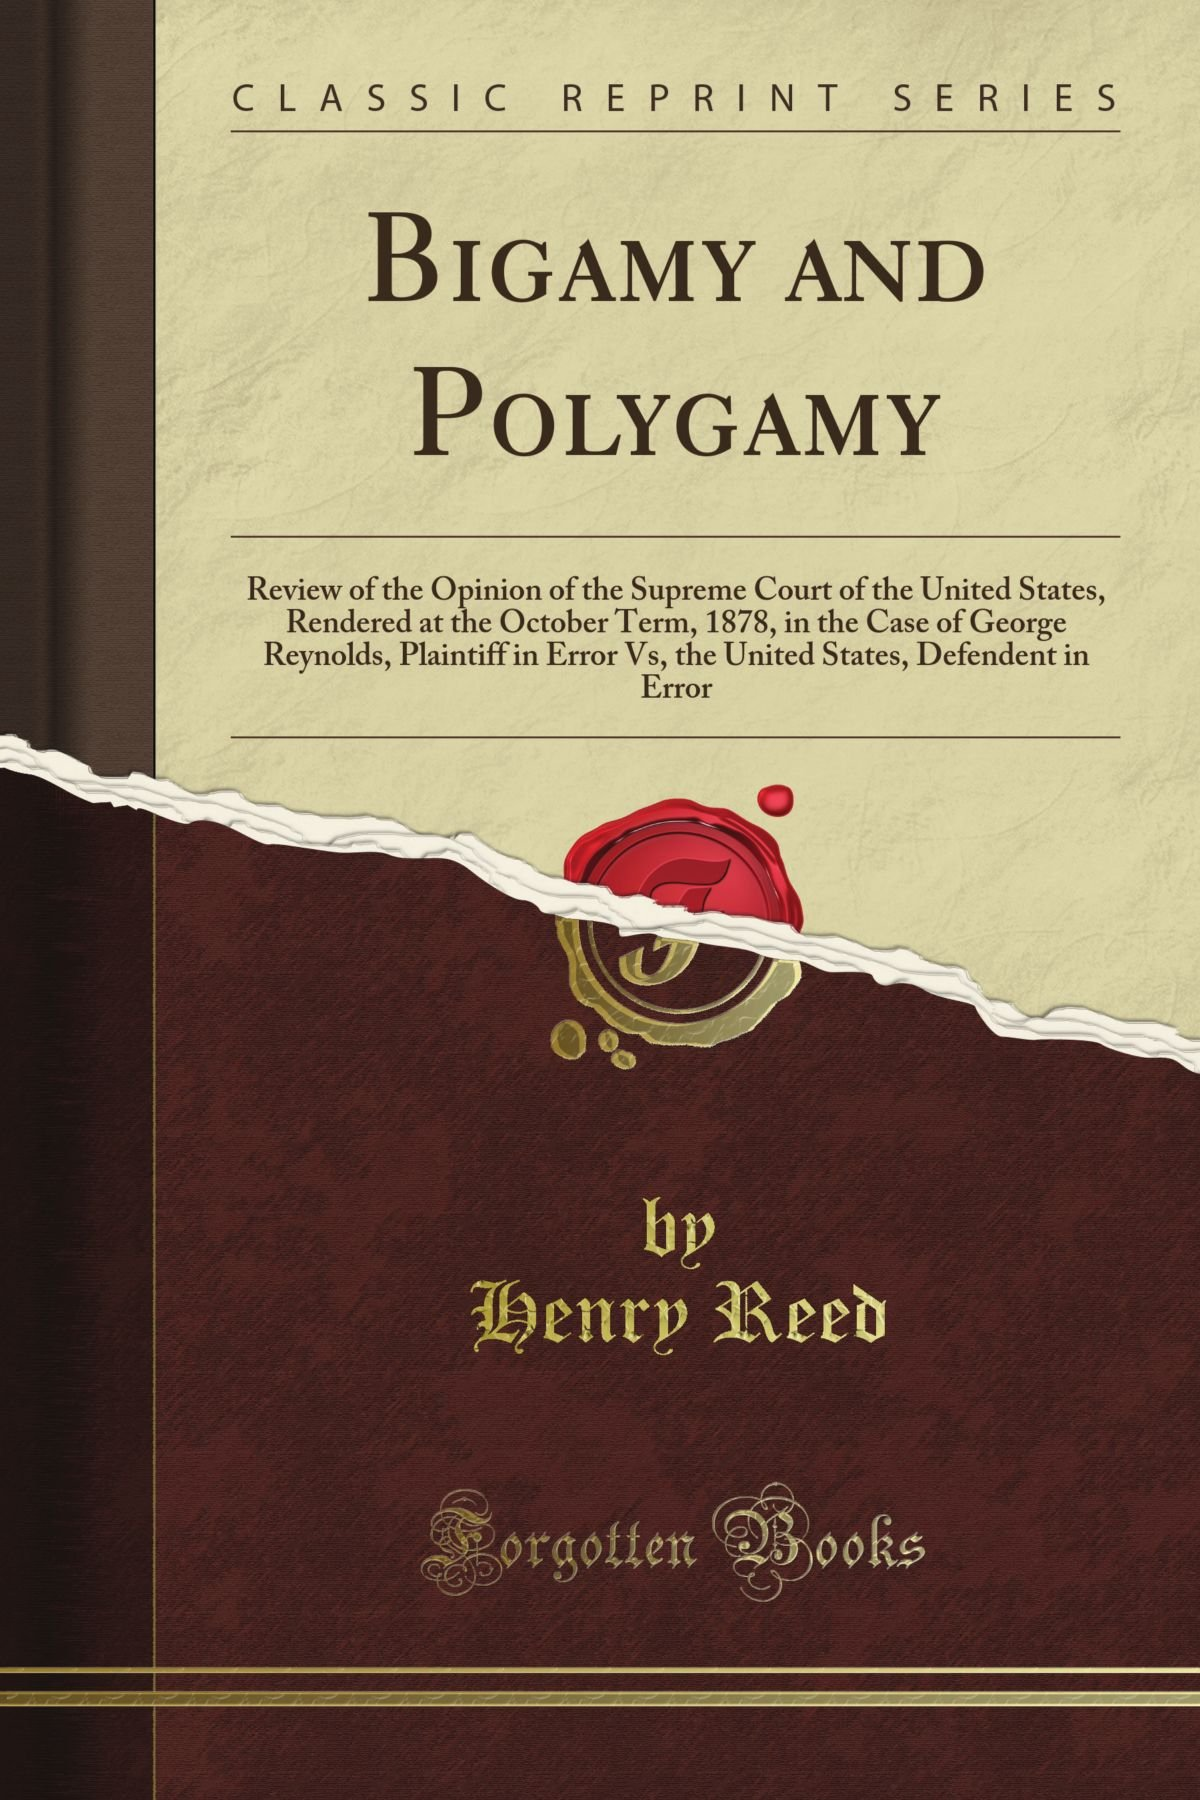 Bigamy and Polygamy: Review of the Opinion of the Supreme Court of the United States, Rendered at the October Term, 1878, in the Case of George ... States, Defendent in Error (Classic Reprint) PDF ePub book